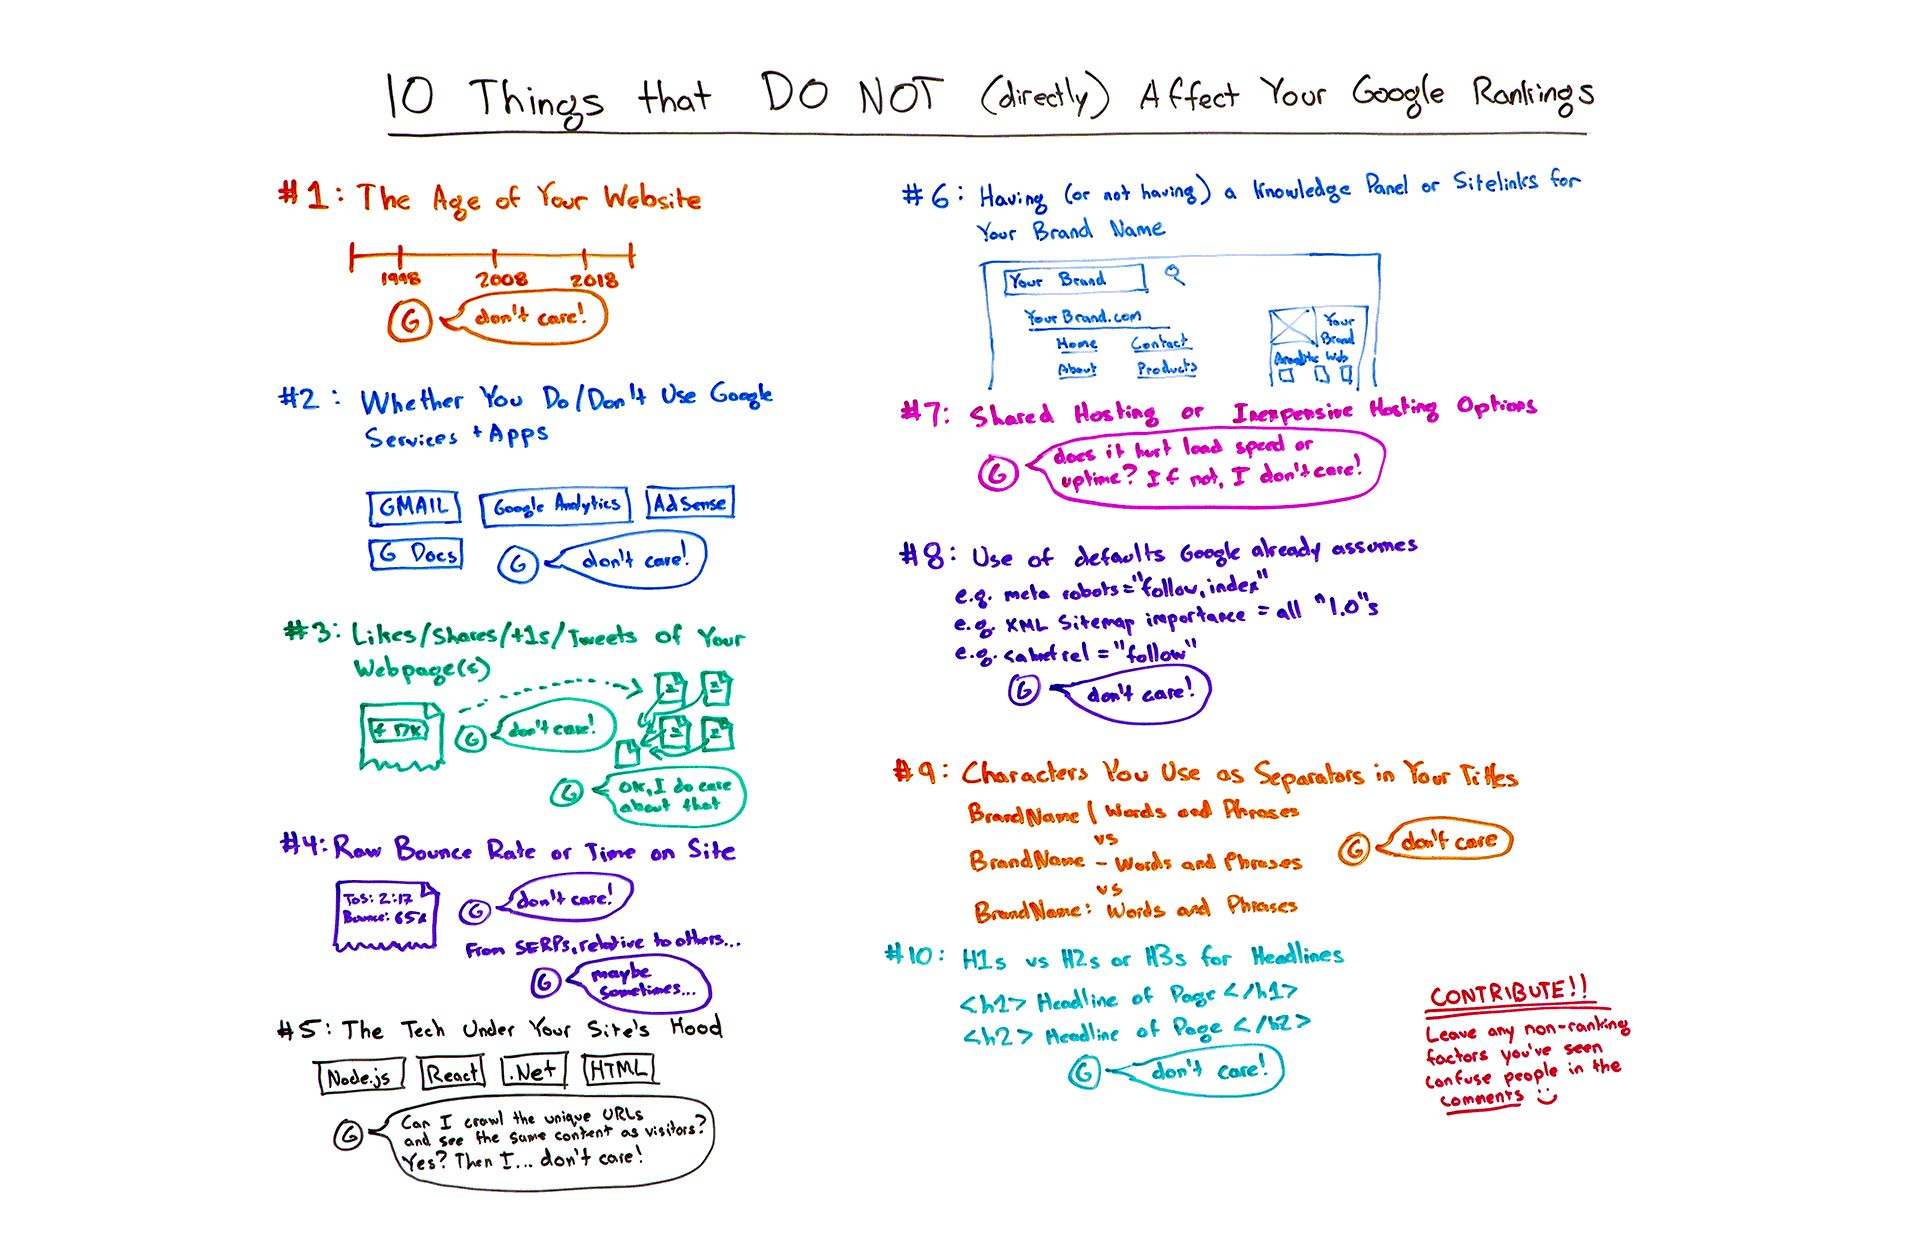 10 Things that DO NOT (Directly) Affect Your Google